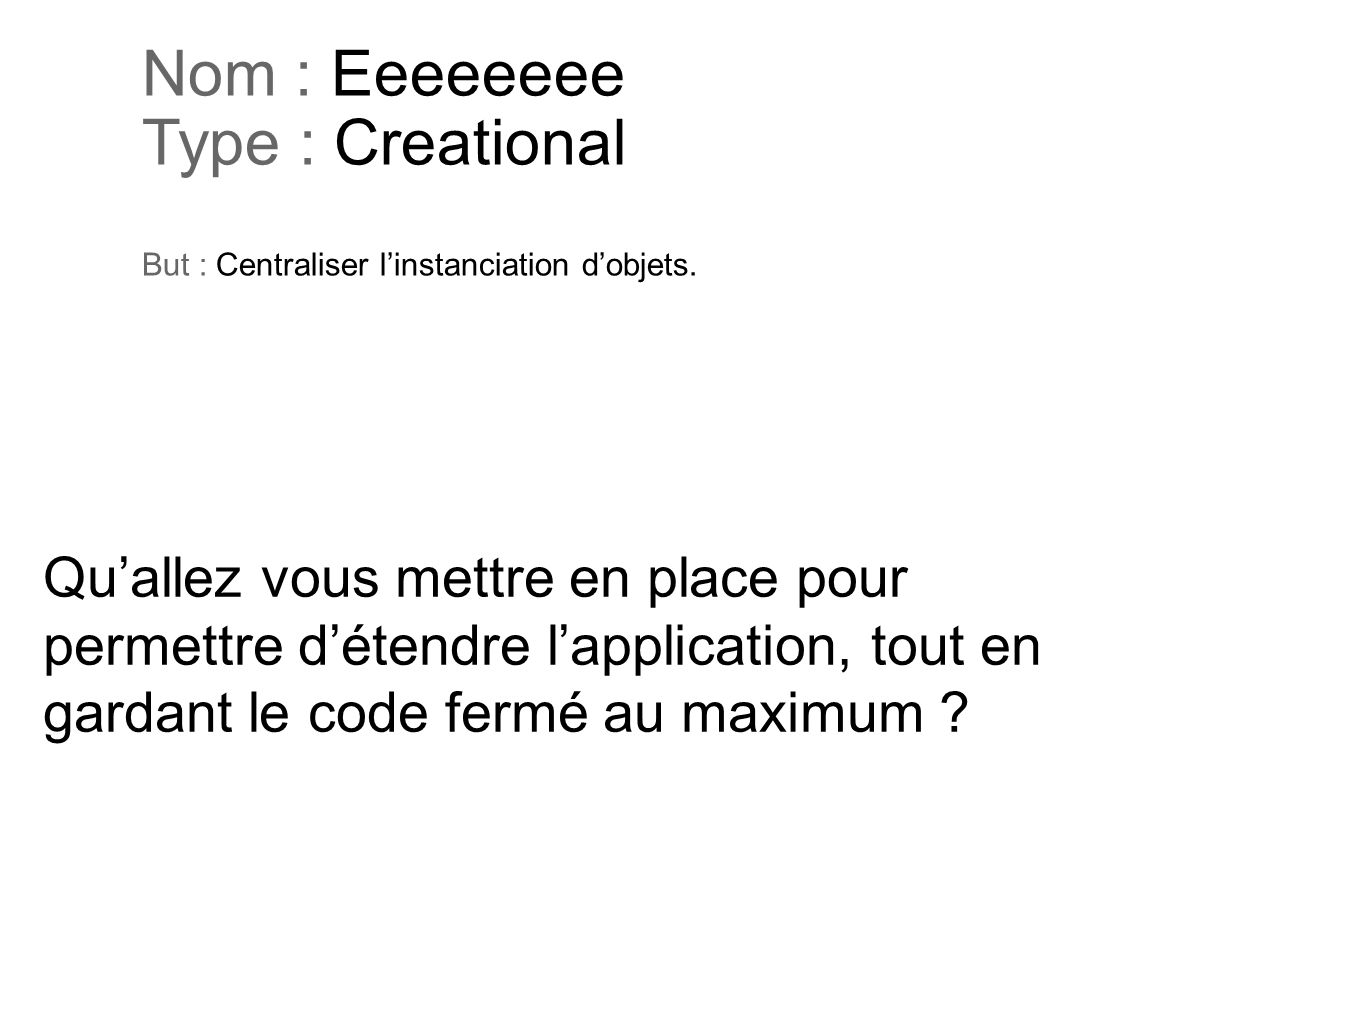 Nom : Eeeeeeee Type : Creational But : Centraliser l'instanciation d'objets.